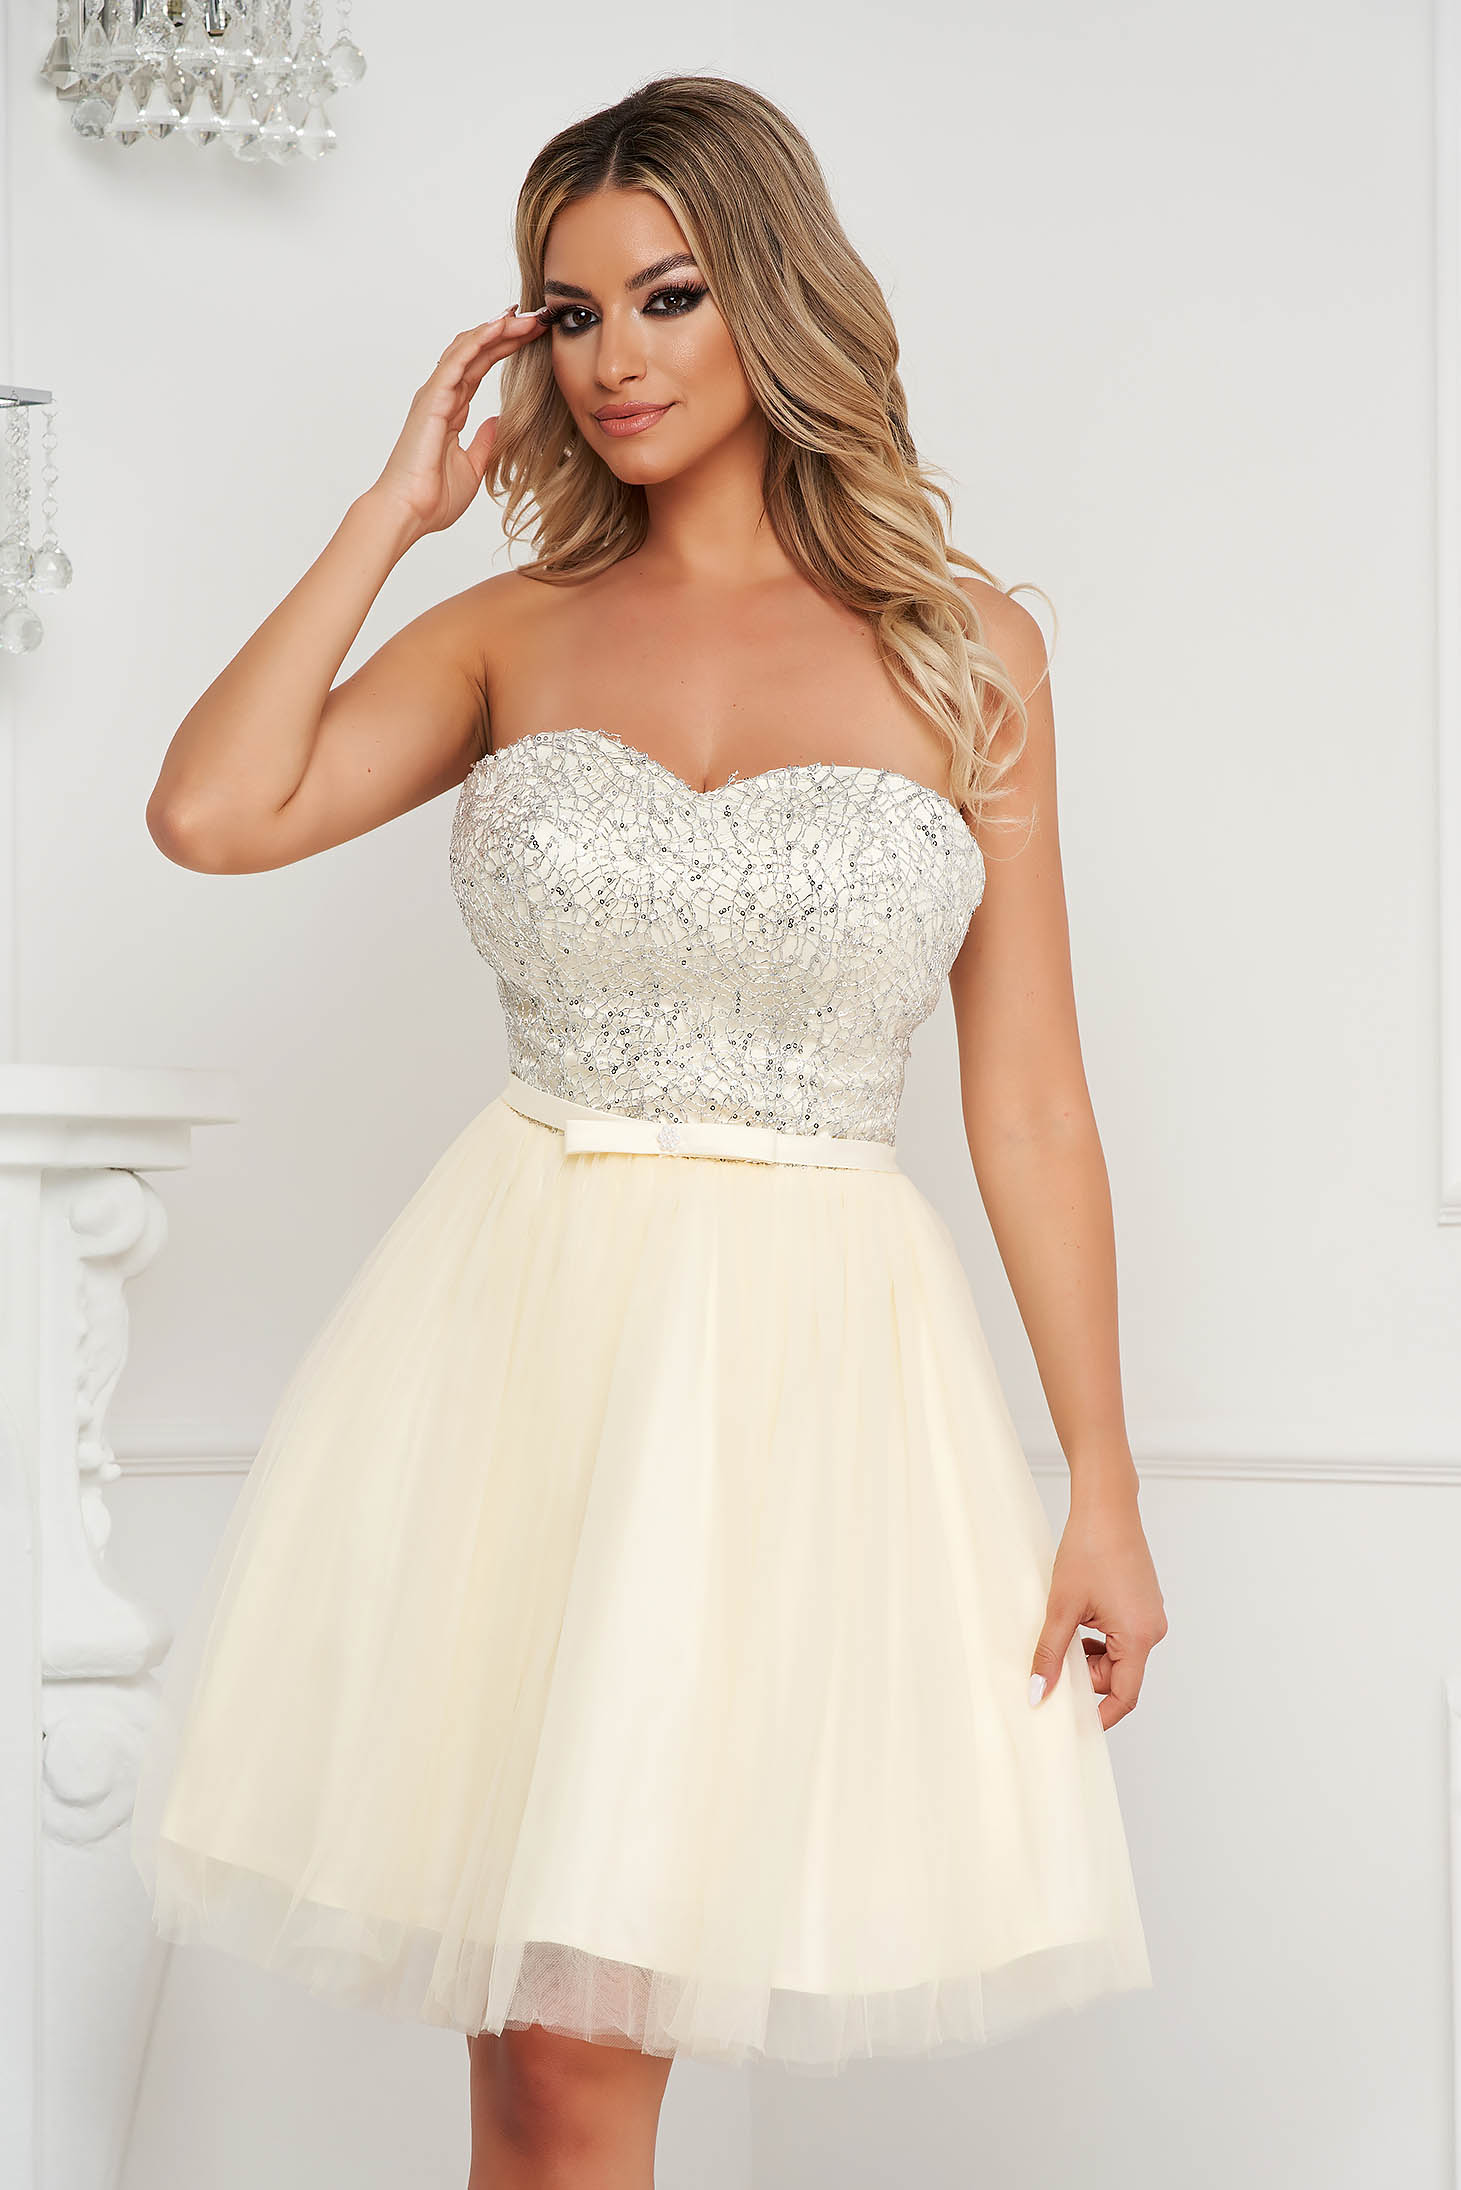 Ivory dress short cut occasional cloche from tulle strapless with sequin embellished details